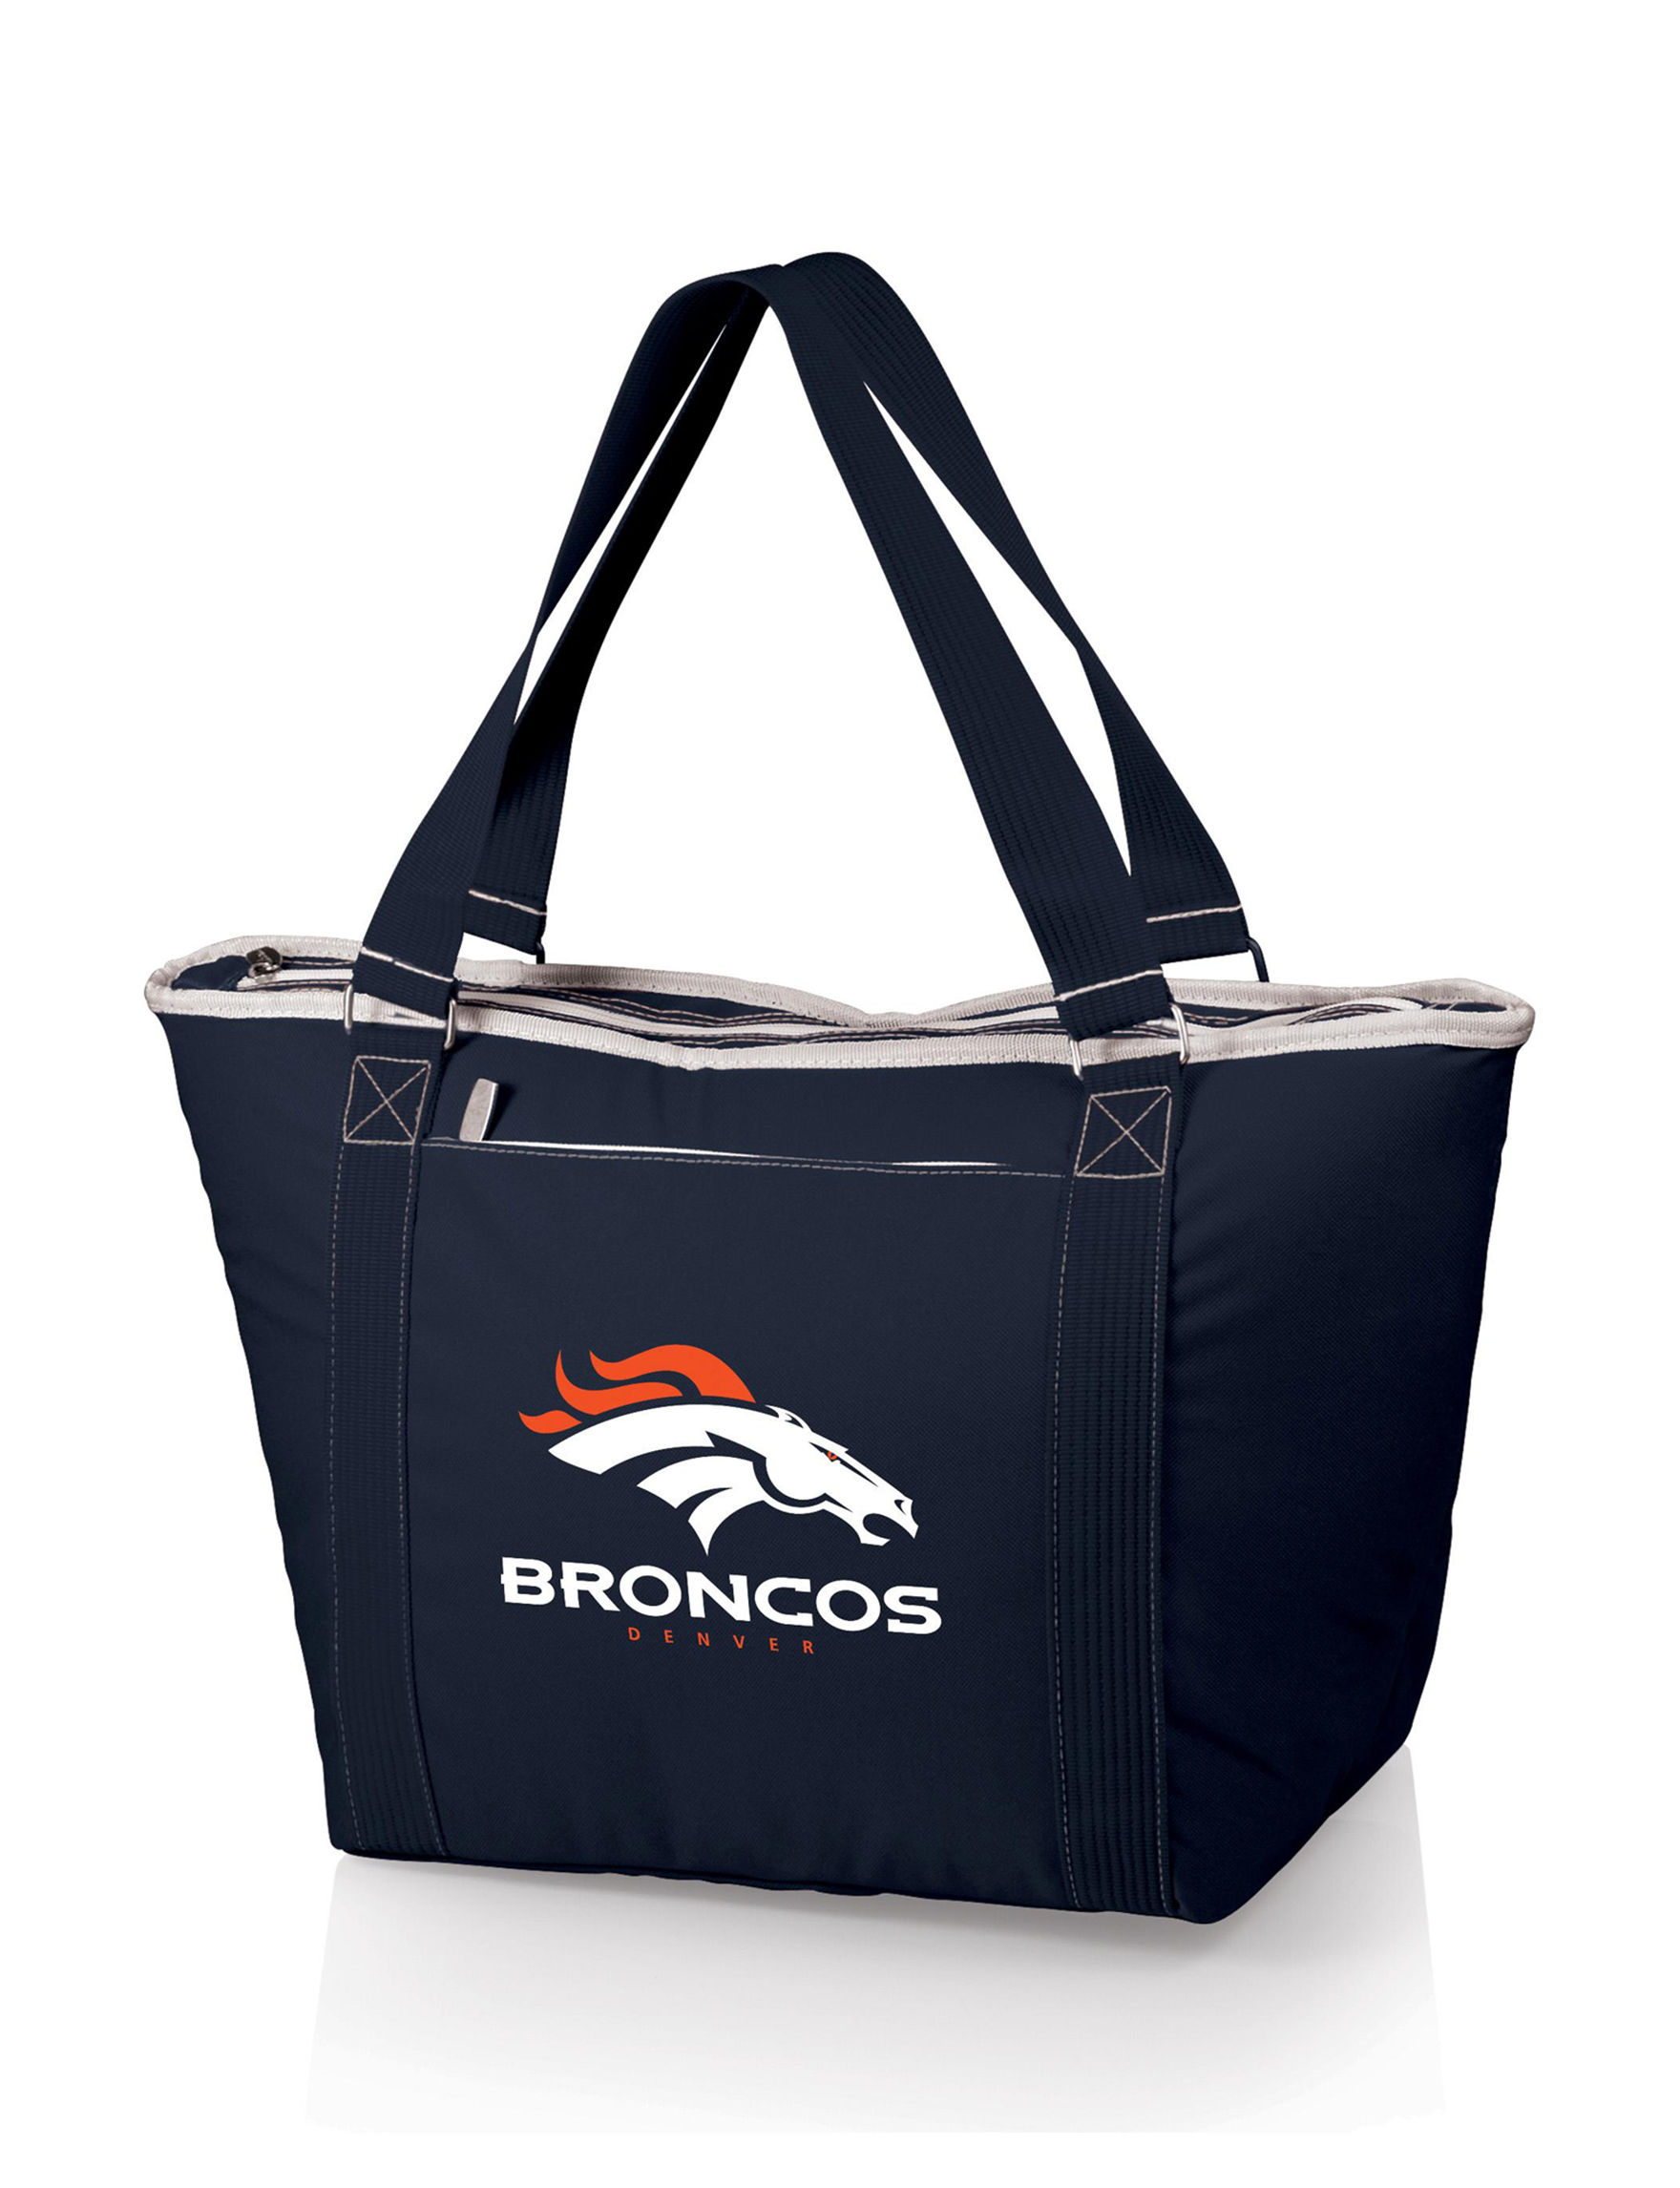 Picnic Time Navy Carriers & Totes Coolers Lunch Boxes & Bags Camping & Outdoor Gear Outdoor Entertaining